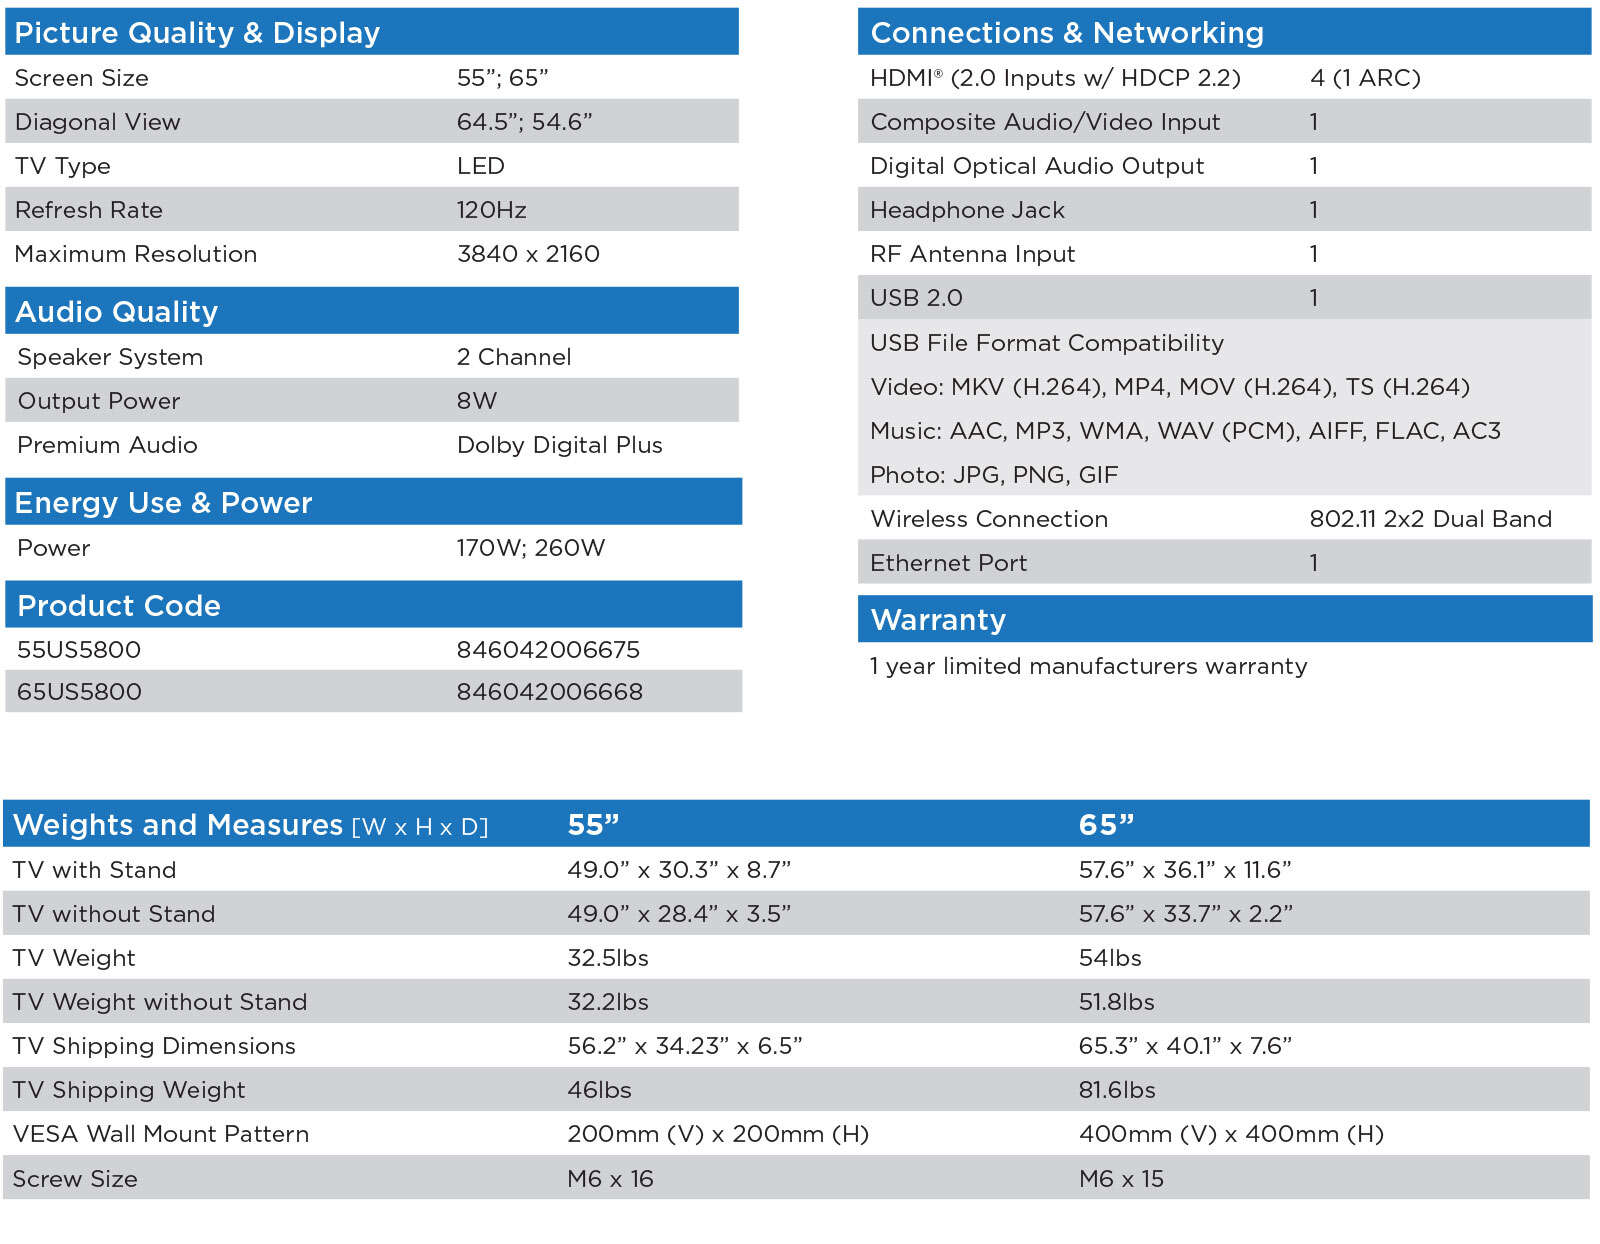 US5800 Spec Sheet